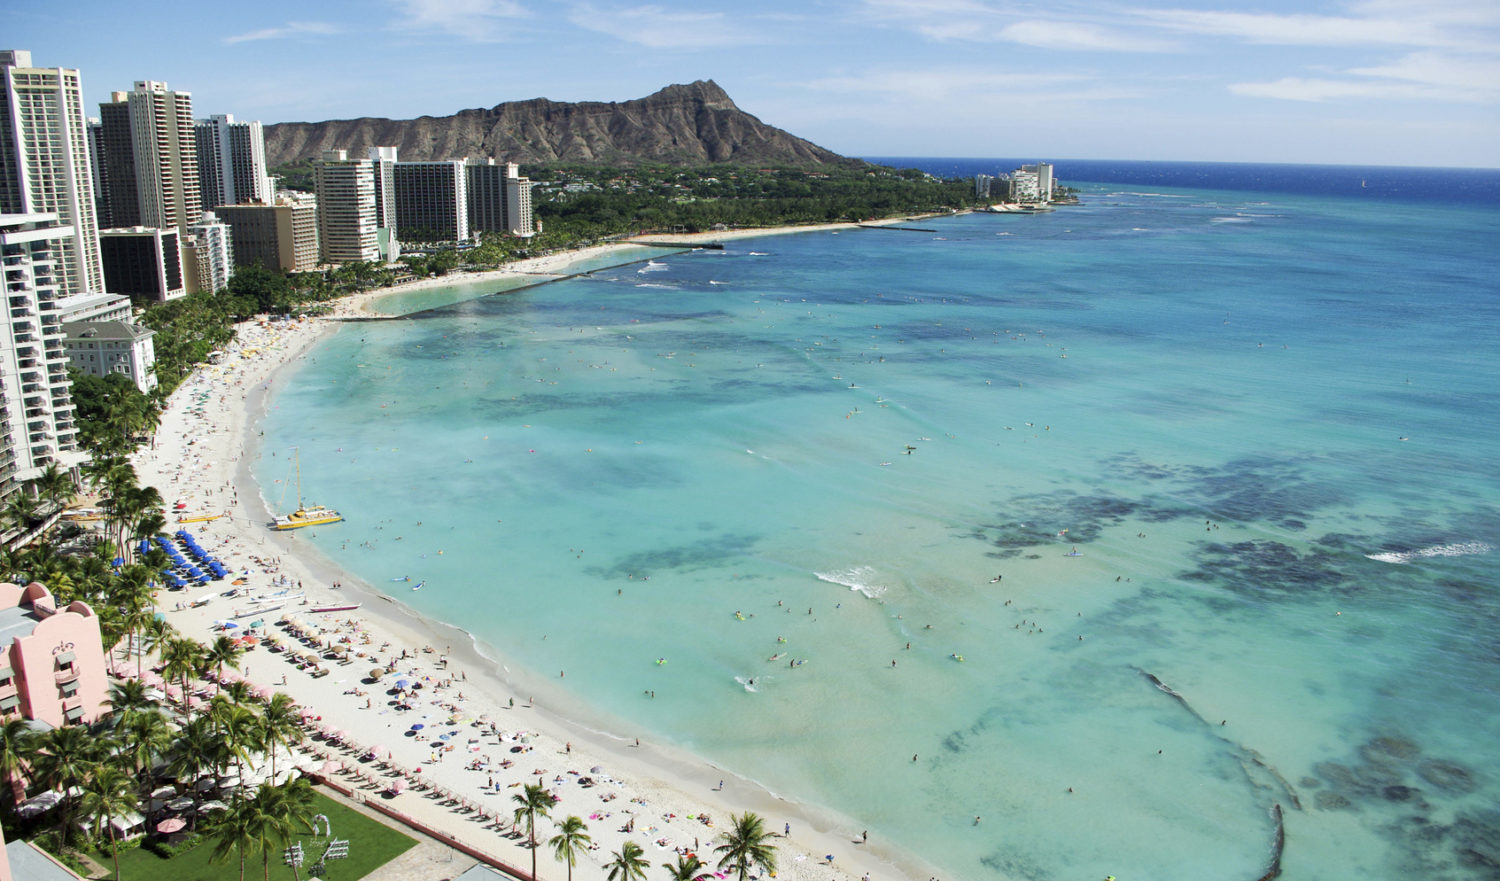 Waikiki Beach and Diamond Head, Honolulu, Oahu Island, Hawaii, October 2012